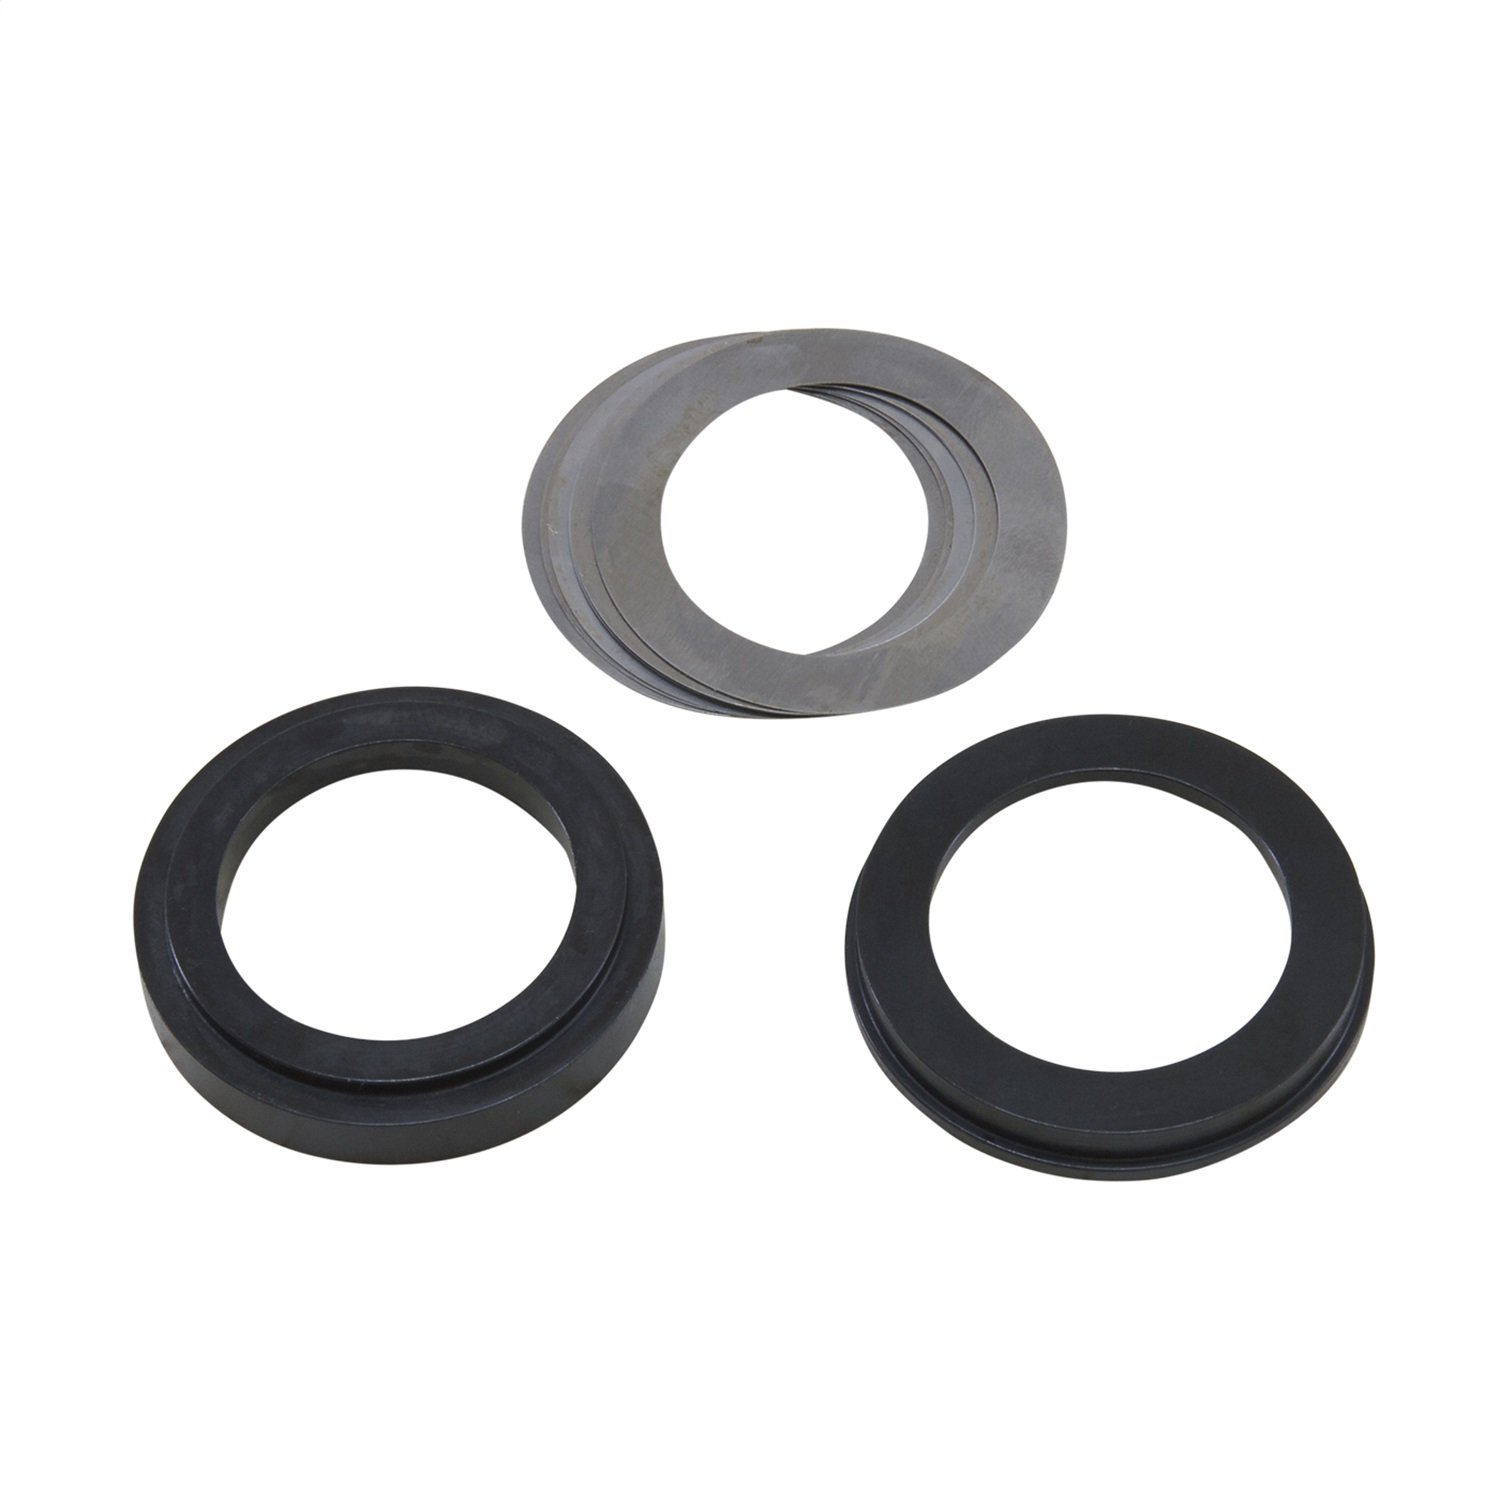 Yukon Gear & Axle (SK CSF9-BIGPIN) Crush Sleeve Eliminator Kit for Ford 9 Differential with 35-Spline Pinion